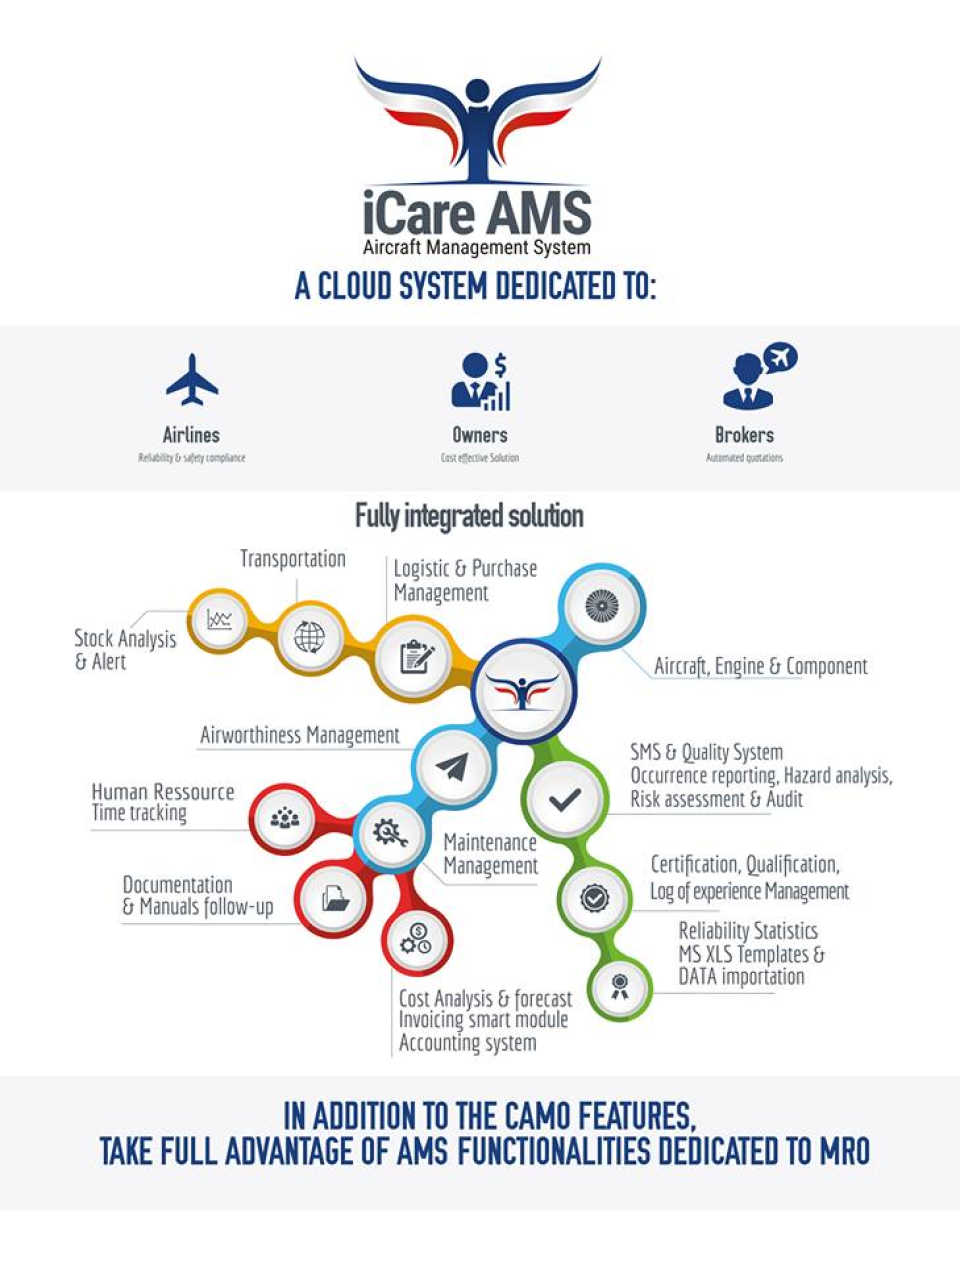 iCare AMS Reviews and Pricing - 2019